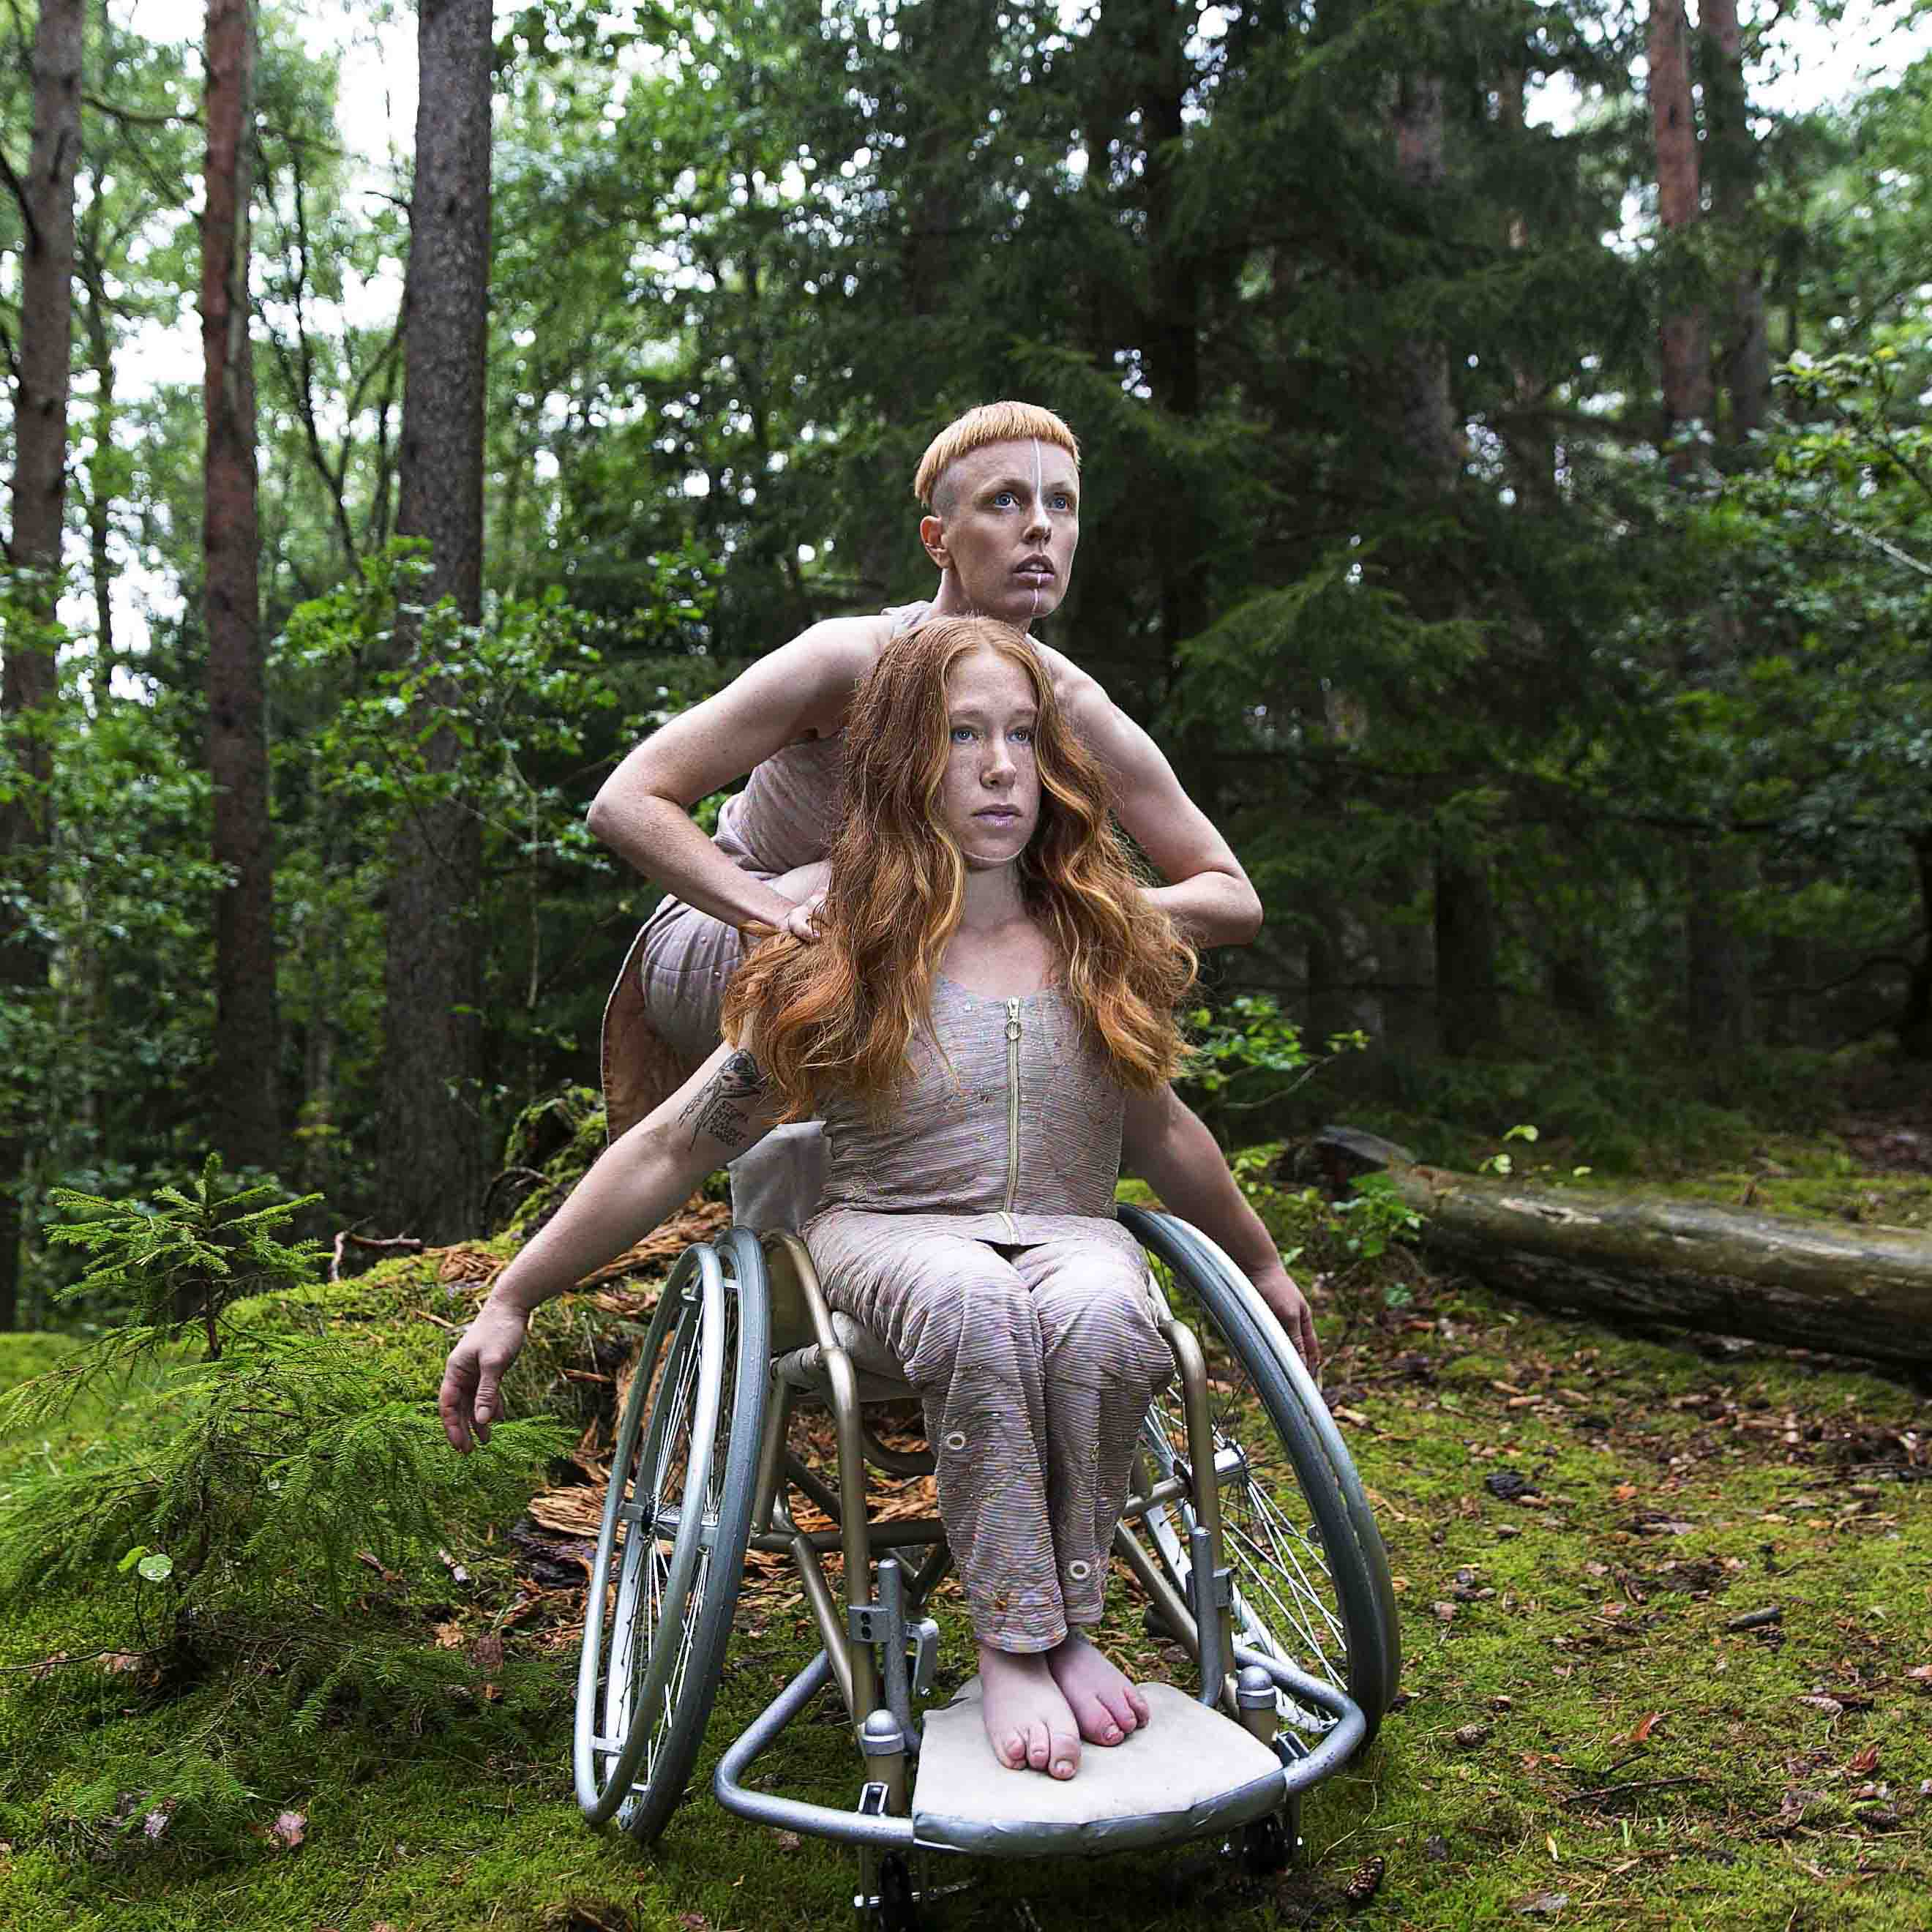 Image for the performance Hannah Felicia. The image depicts the dancers in a forest, wearing costumes shimmering in pink. Felicia is sitting in a wheelchair with her arms pointing backwards, flowing red hair, looking upwards right. Behind her, up on the wheelchair, Hannah crouches, also looking upwards right. Photo: Anna Ósk Erlingsdóttir